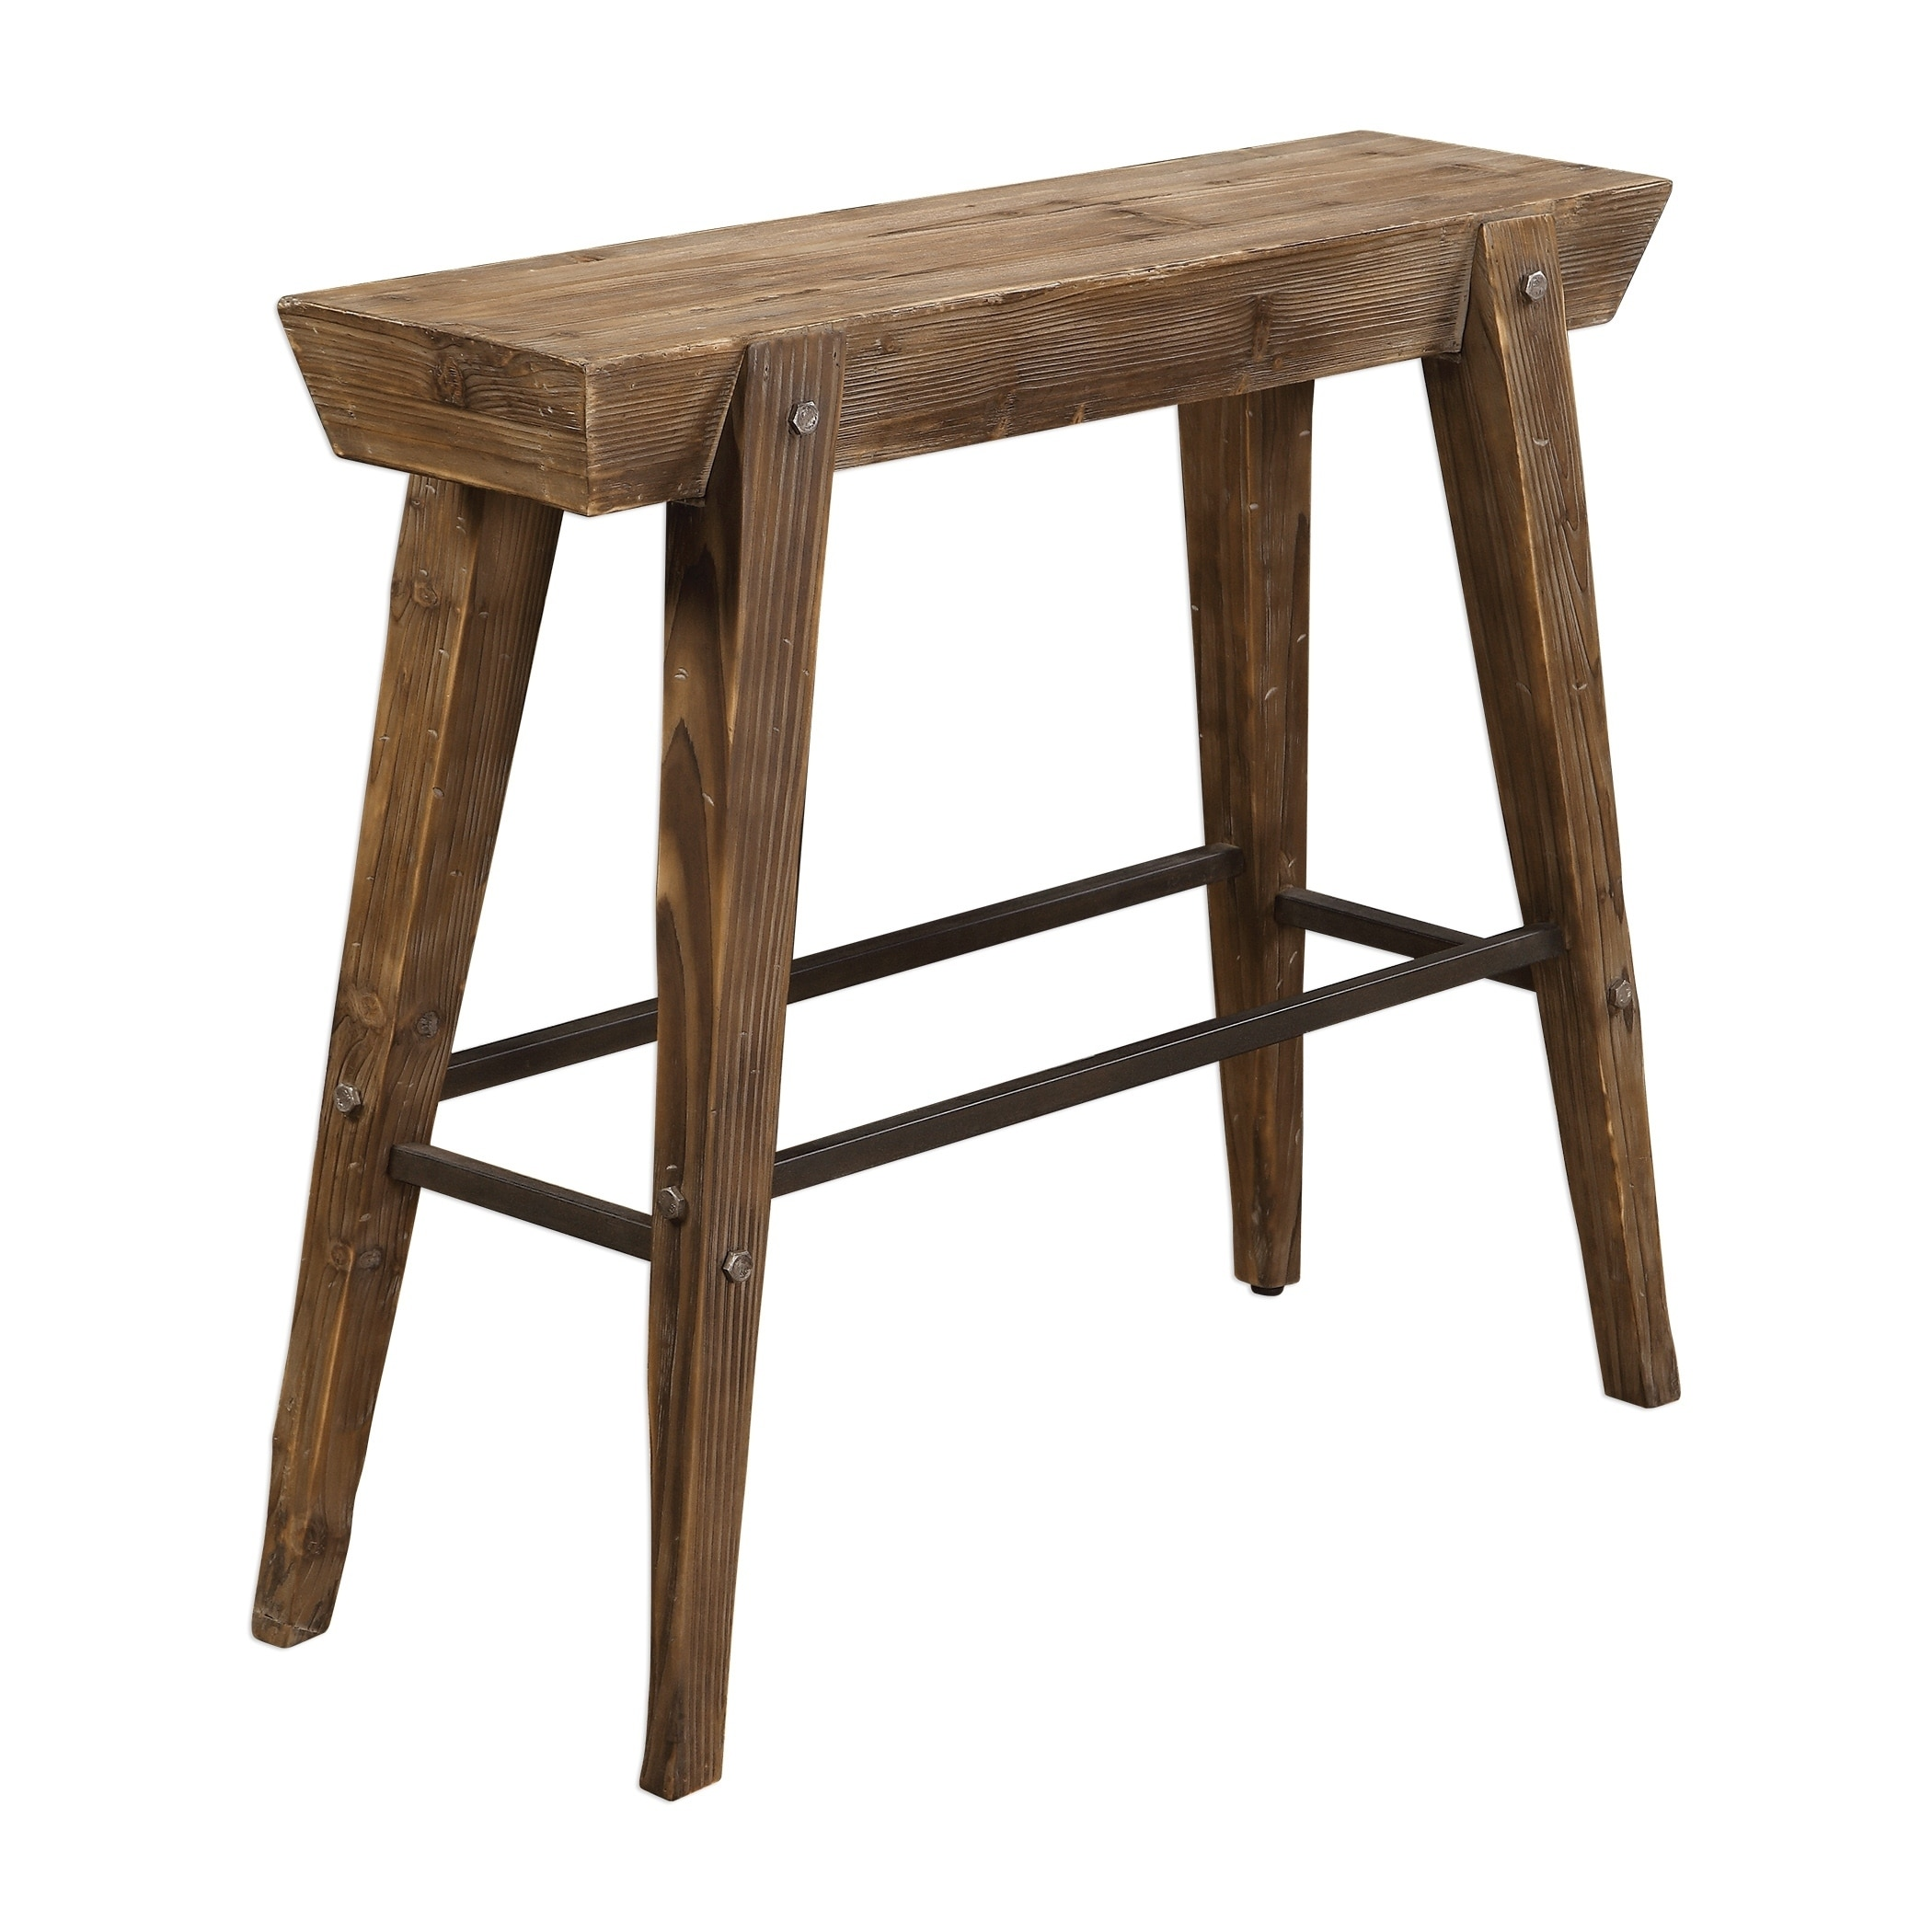 Delicieux Uttermost Hayes Natural Weathered Wooden Console Table